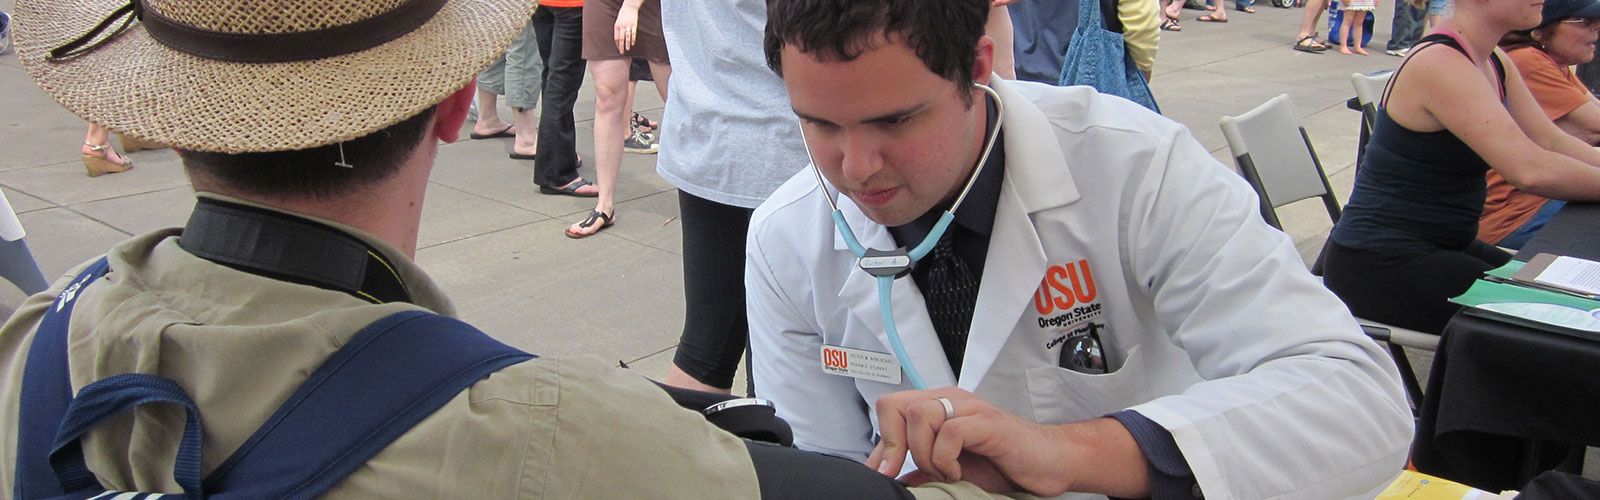 student in white lab coat conducting blood pressure test